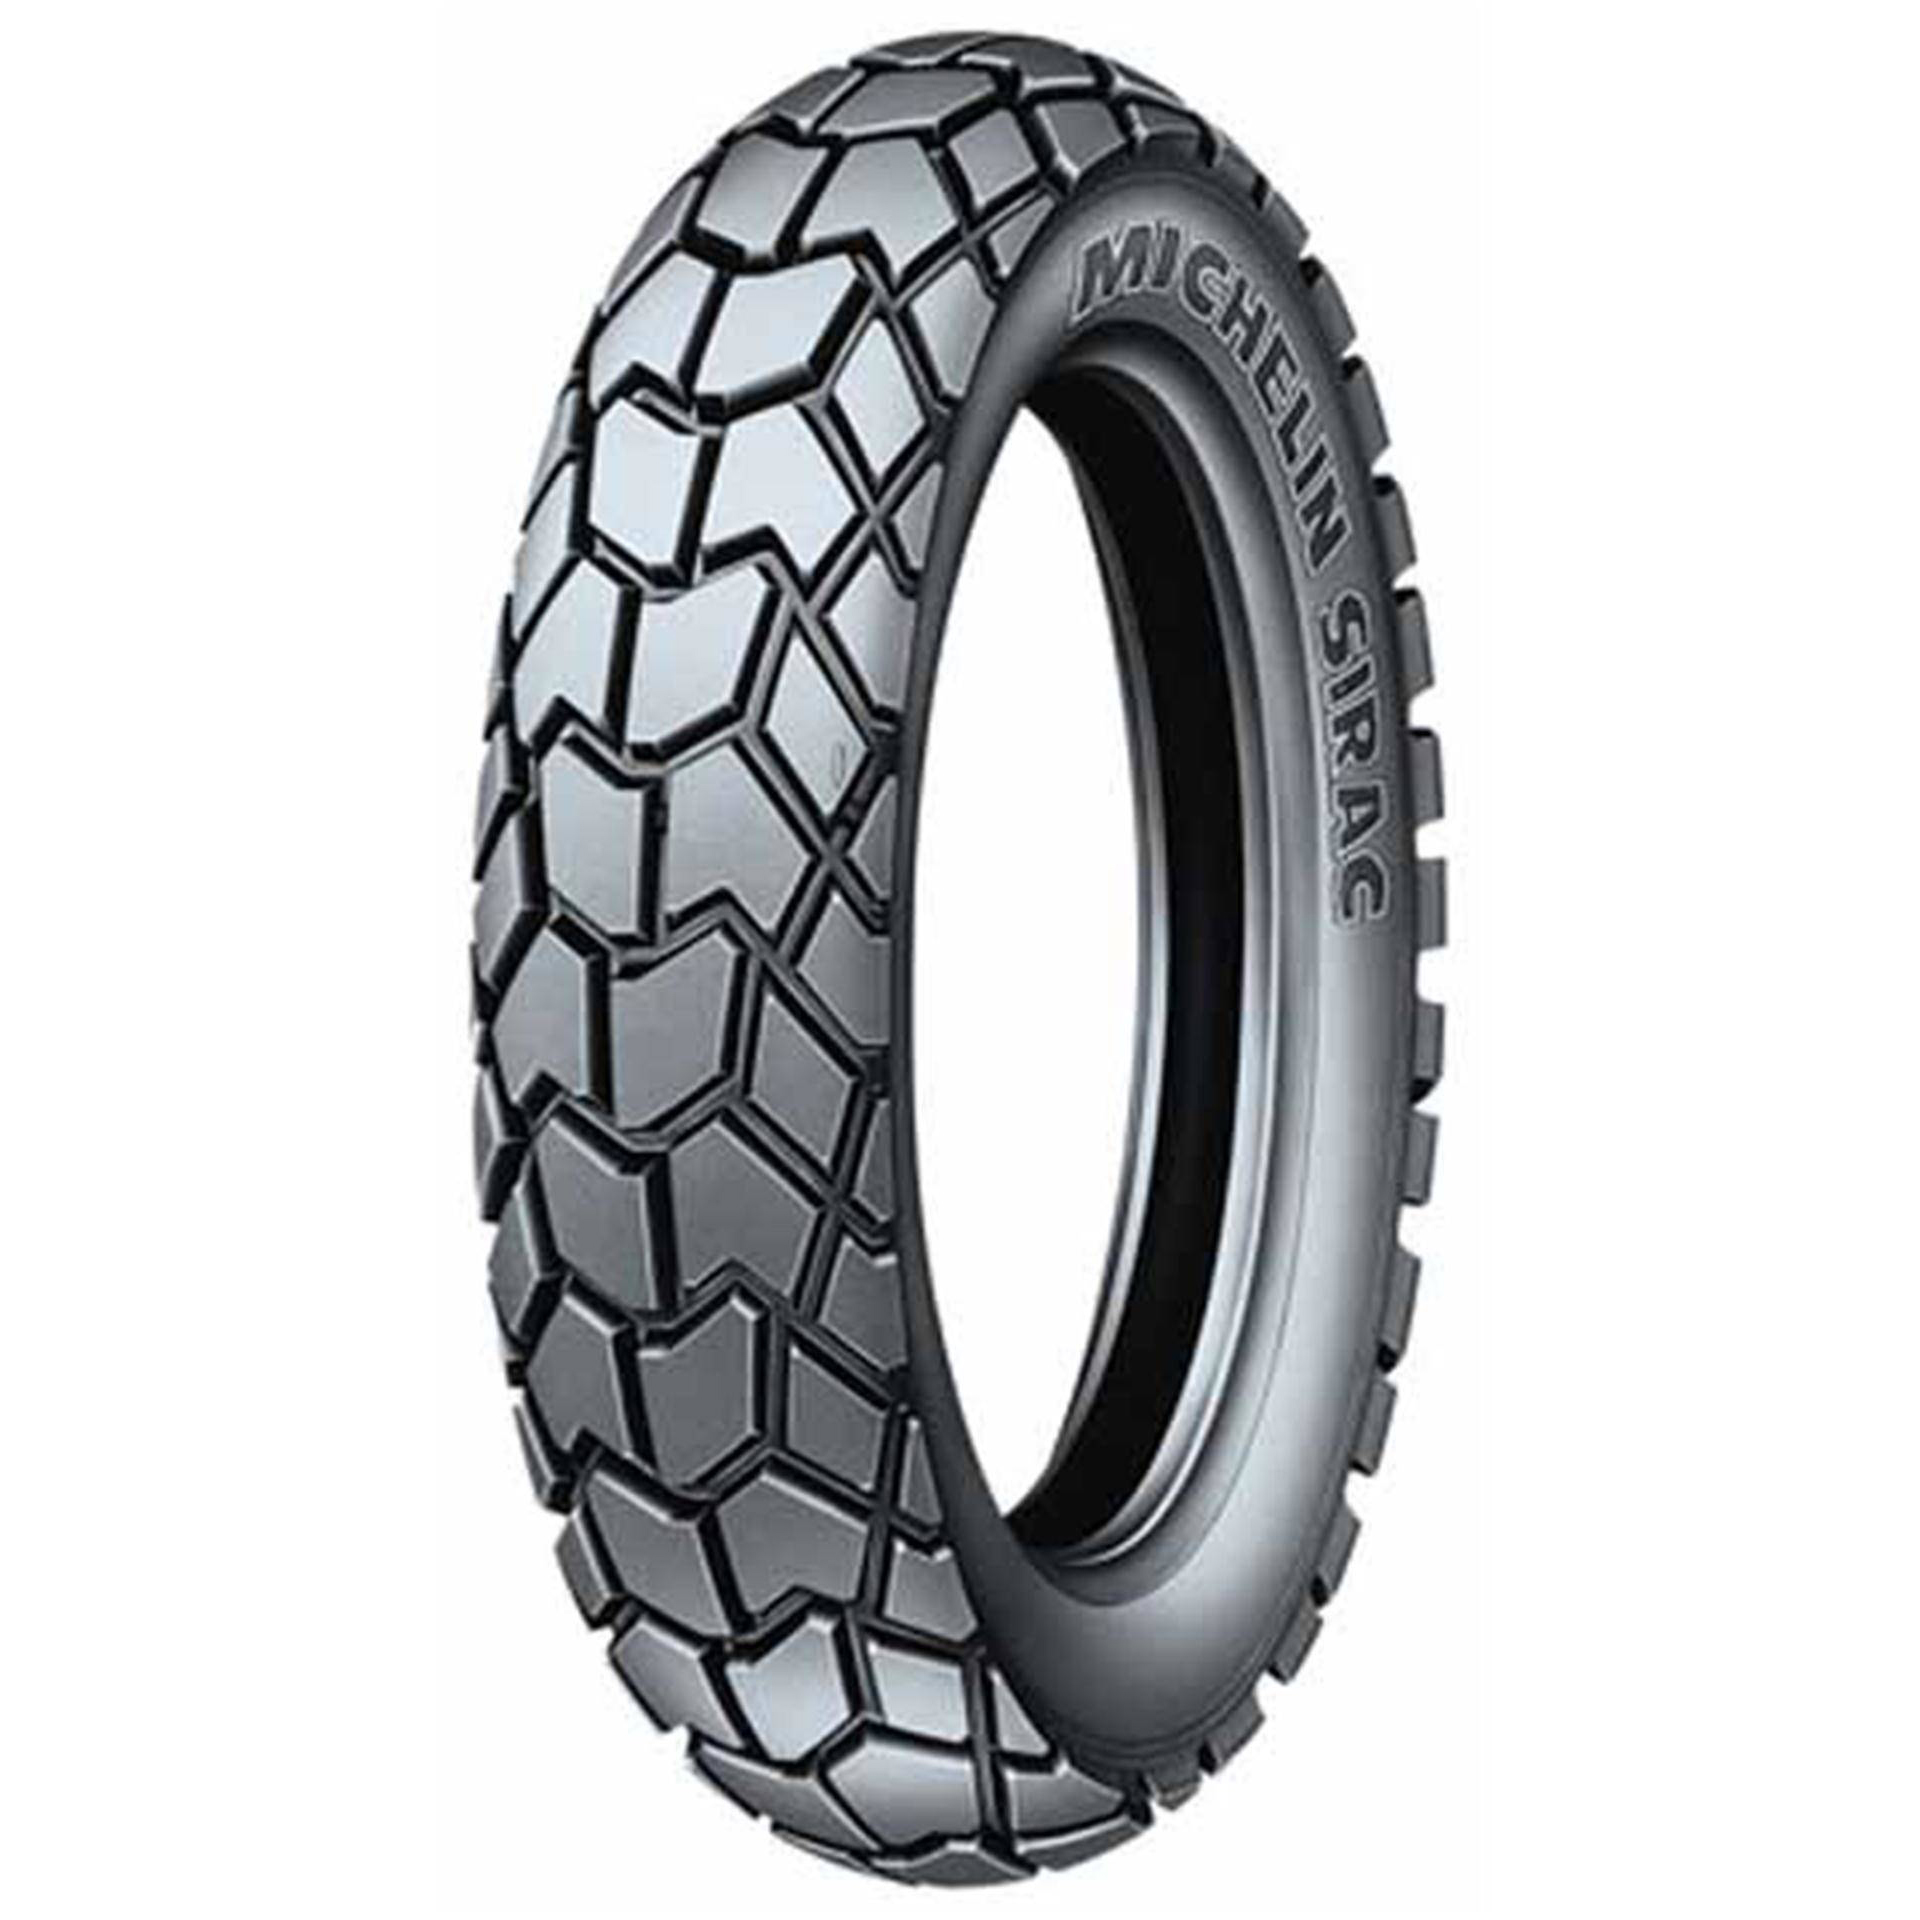 Michelin SIRAC STREET 110/90 18 Tubeless 61 P Rear Two-Wheeler Tyre